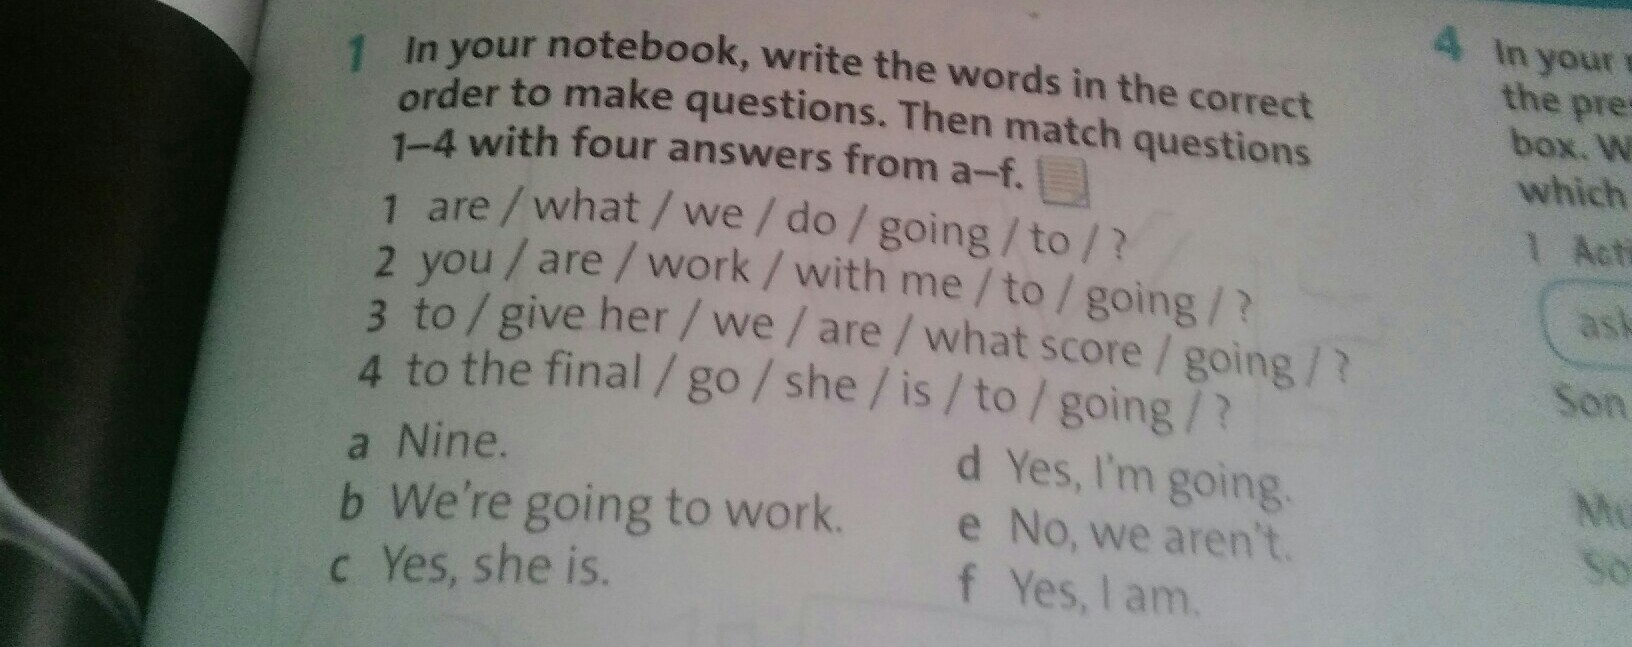 In your notebook, write the words in the correct order to